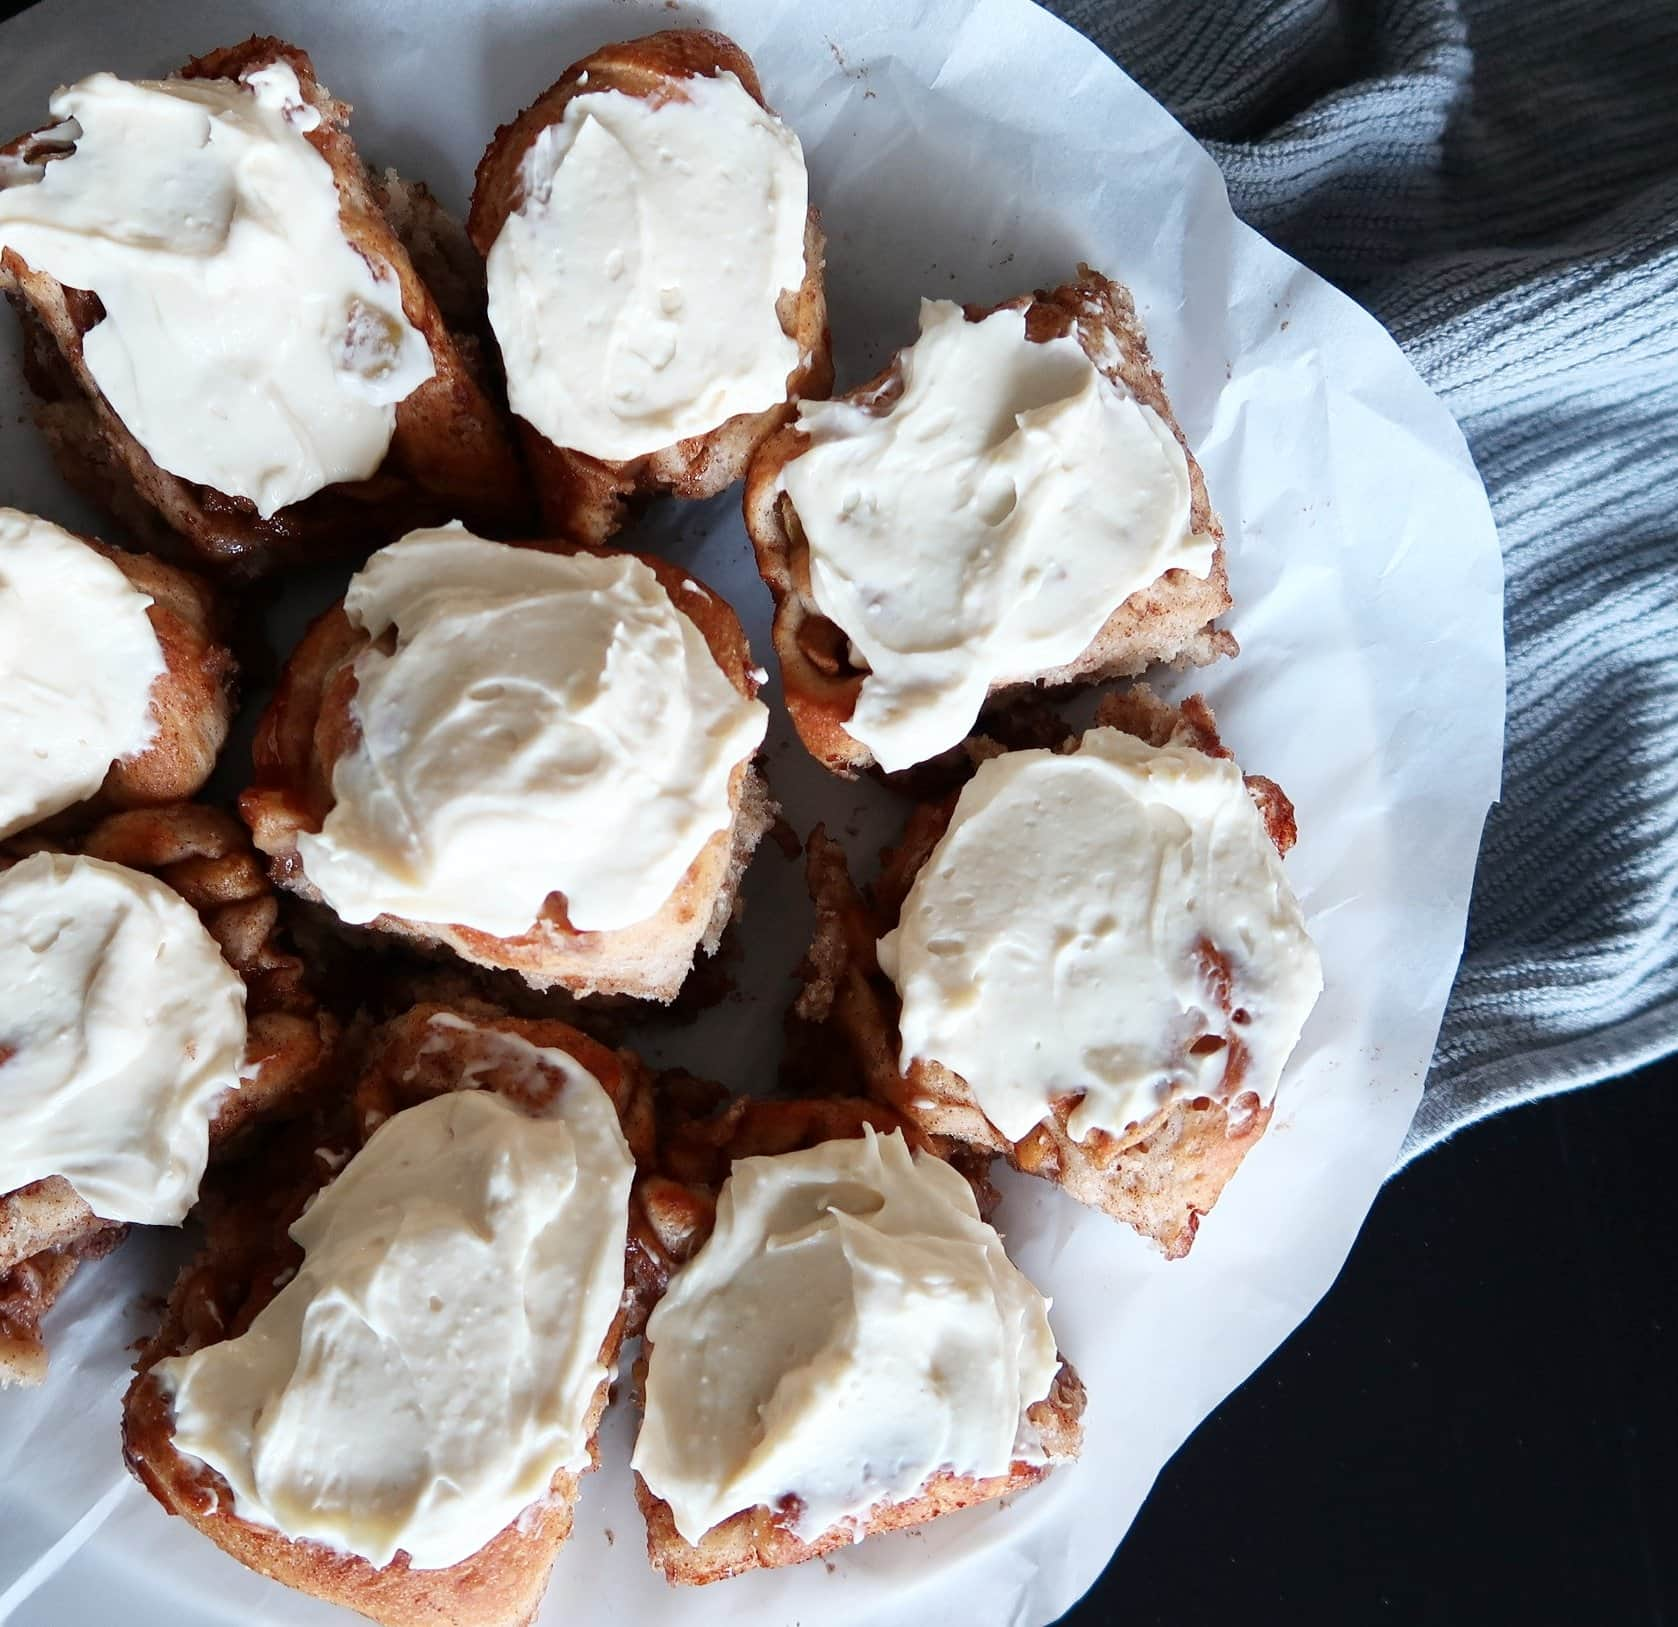 A plate of Apple Cinnamon Rolls with Maple Cream Cheese Frosting.